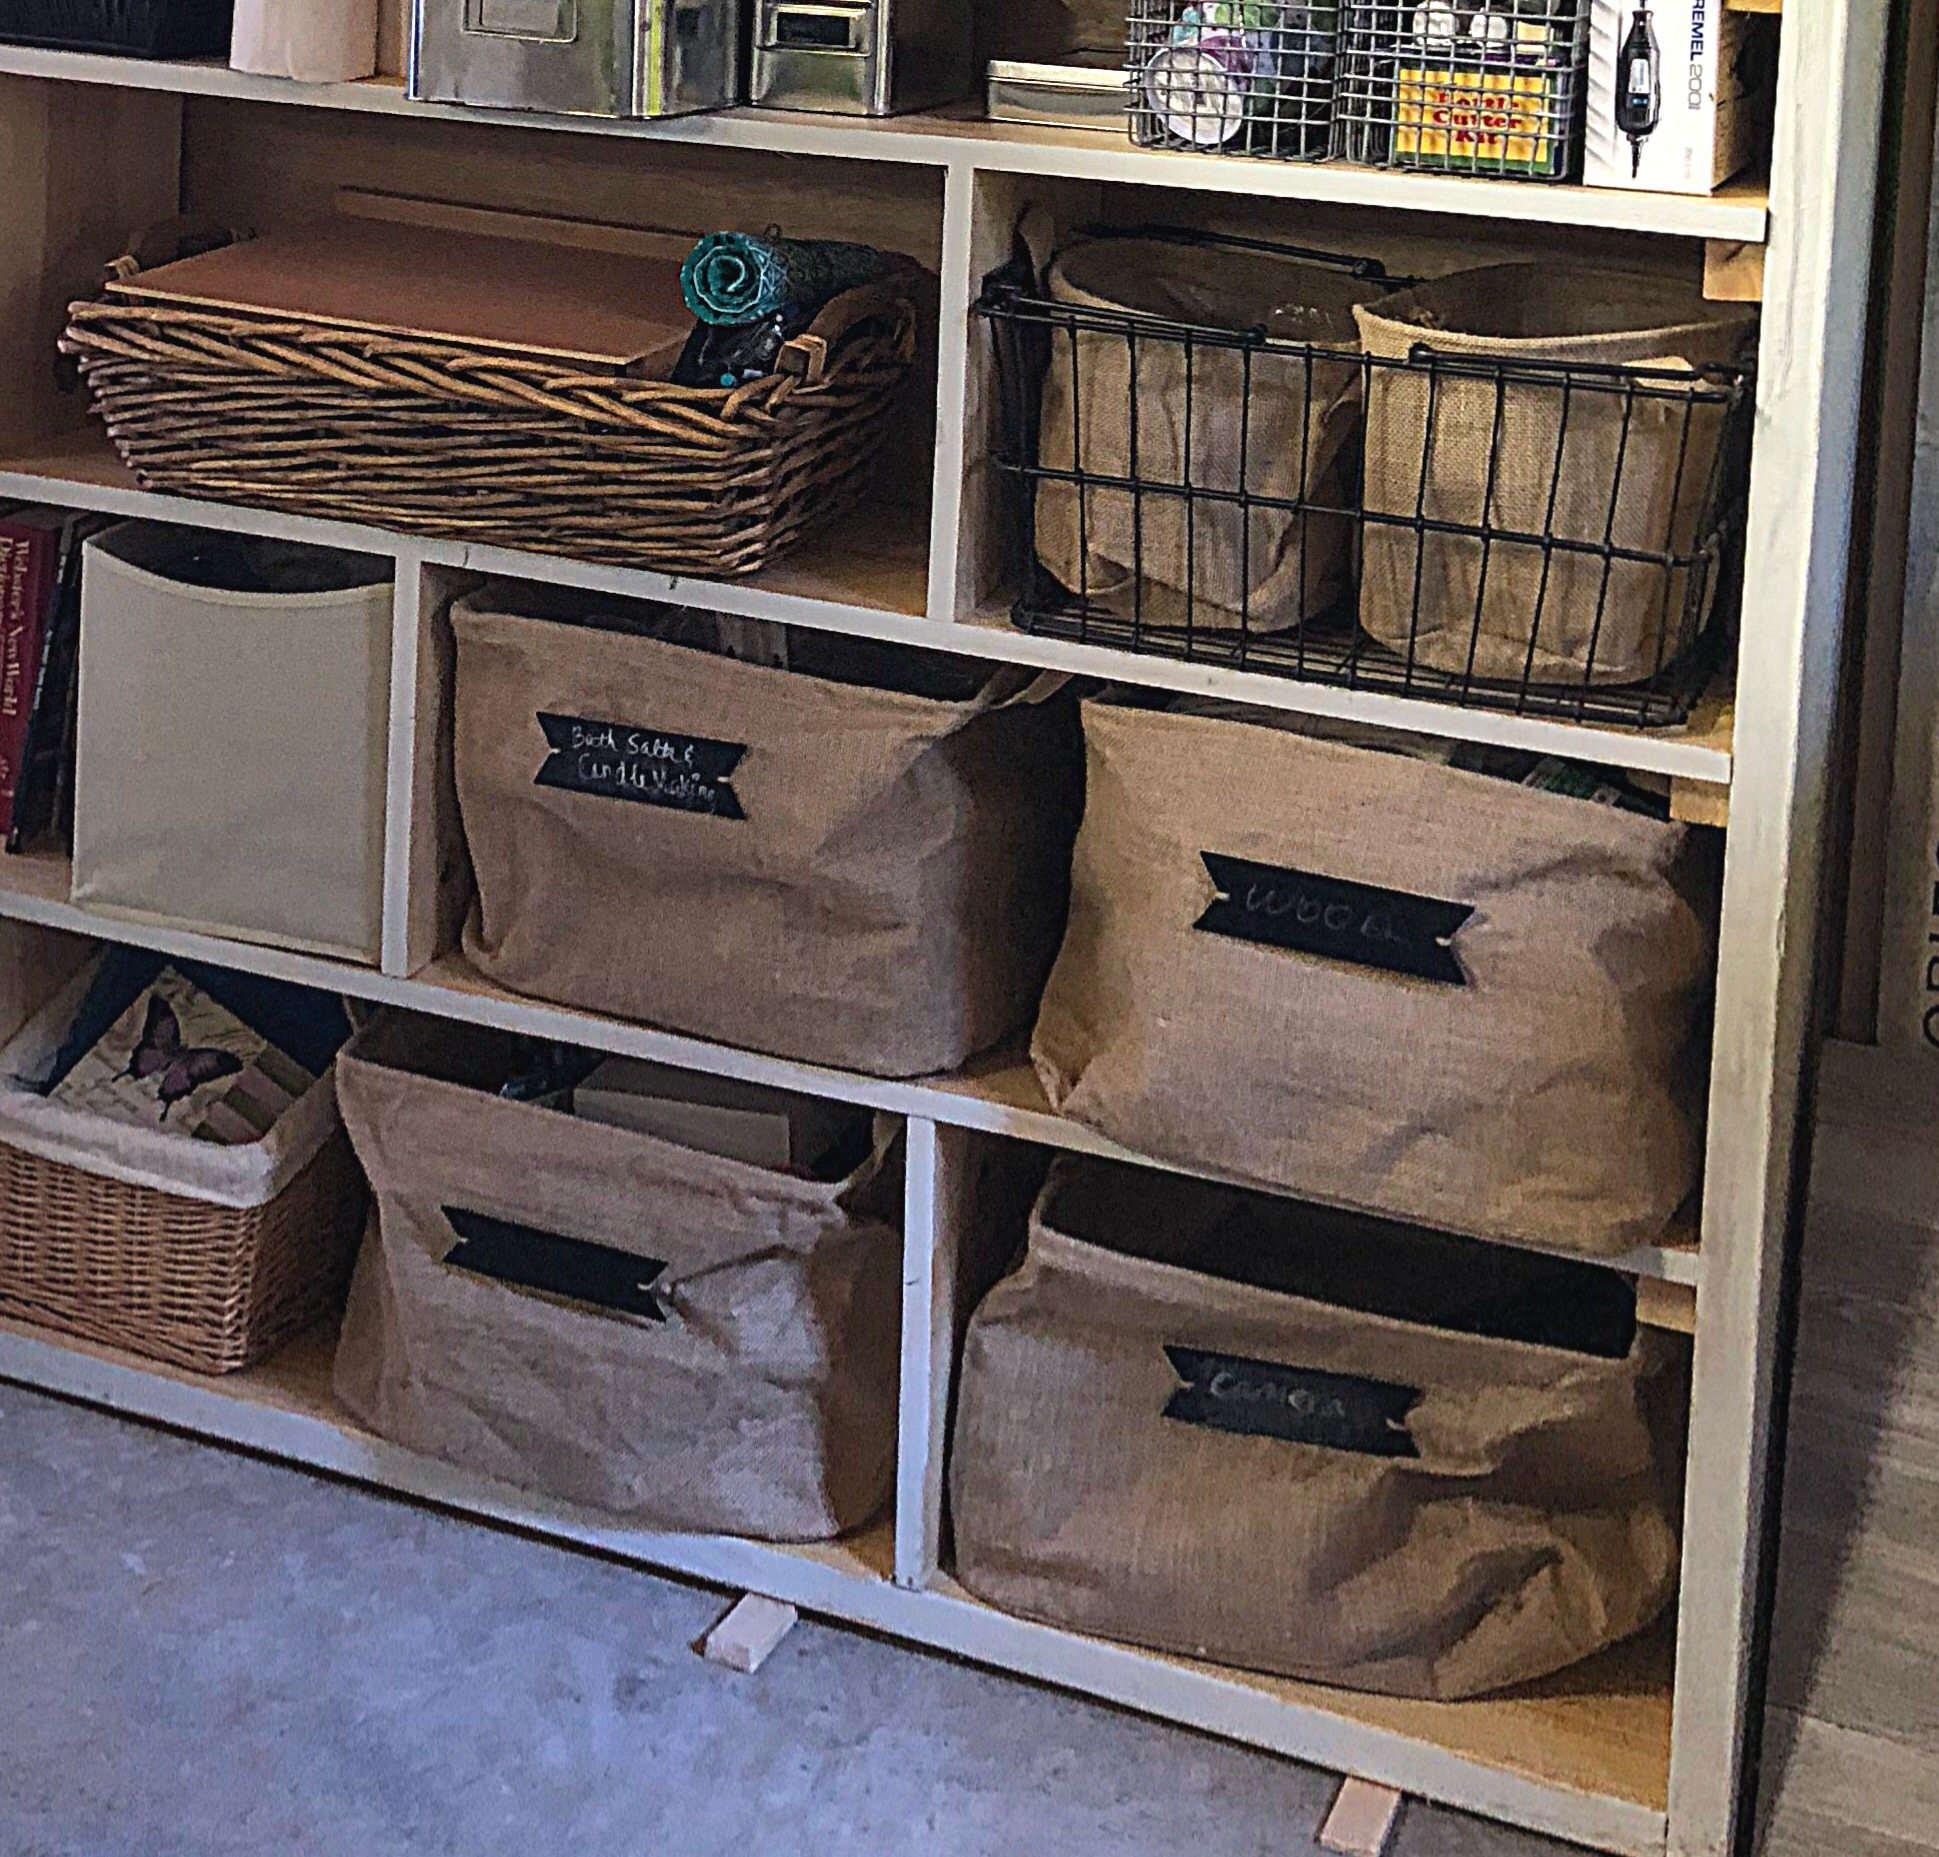 Burlap storage containers